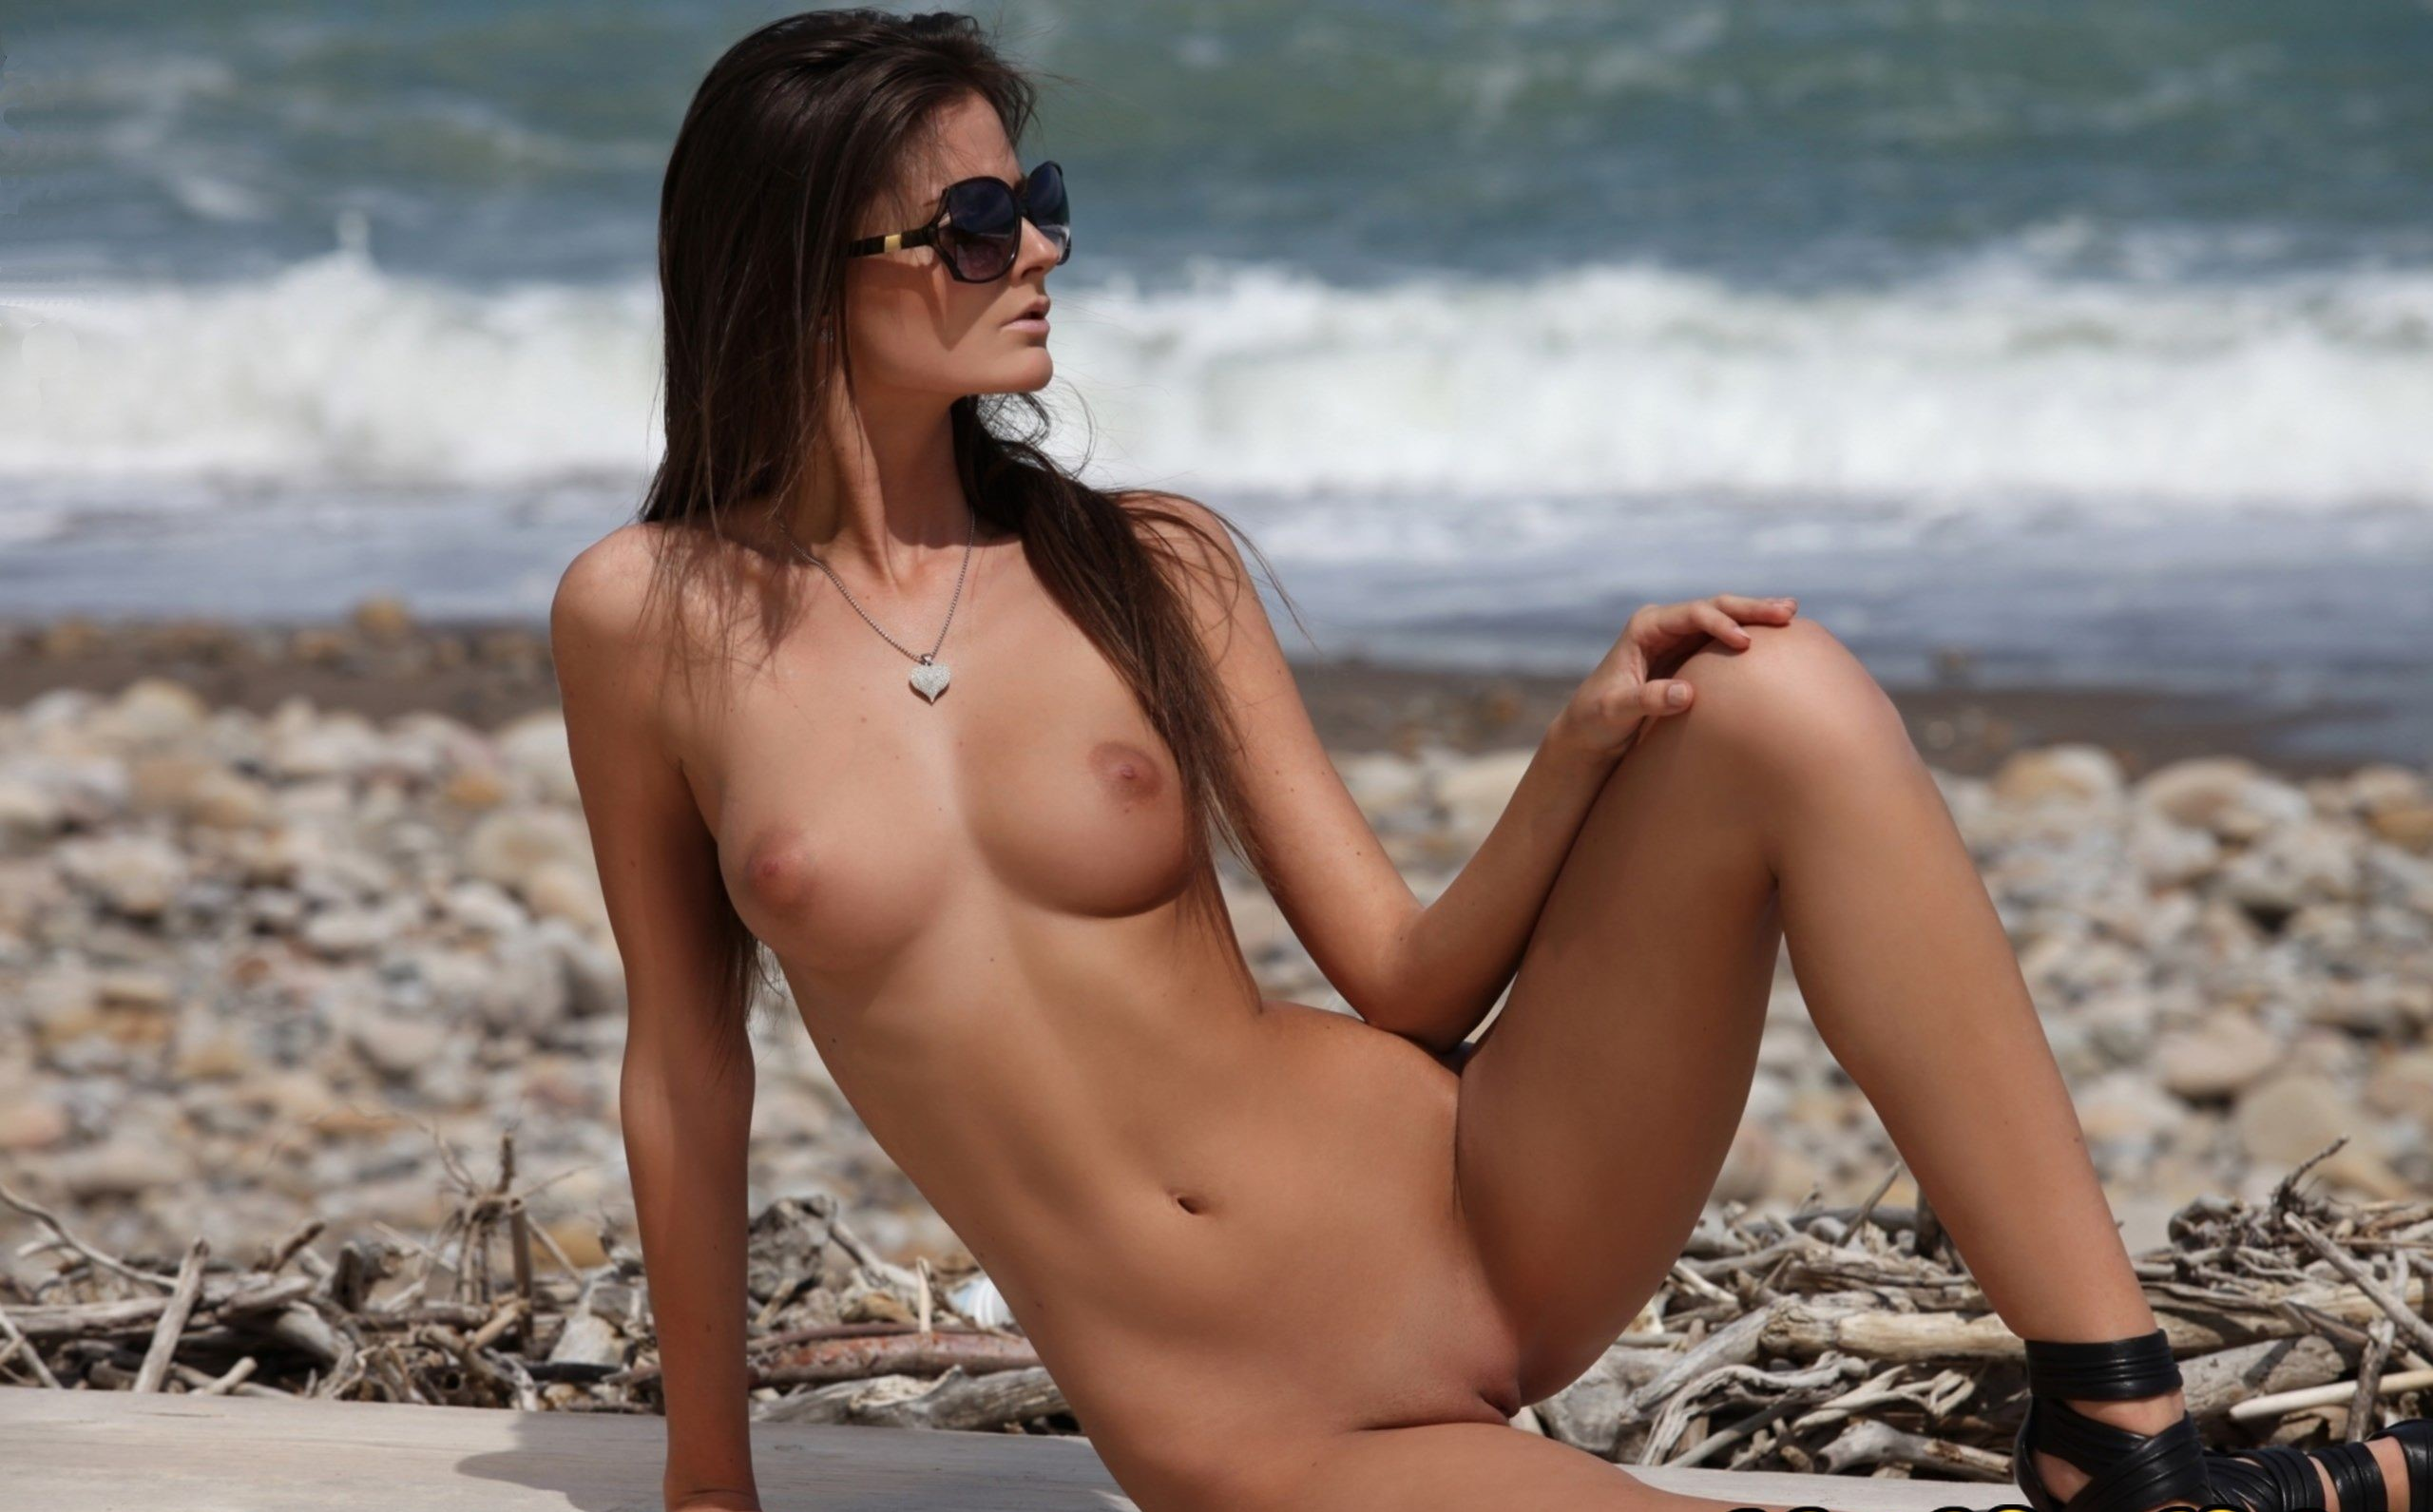 Naked beach model video #11